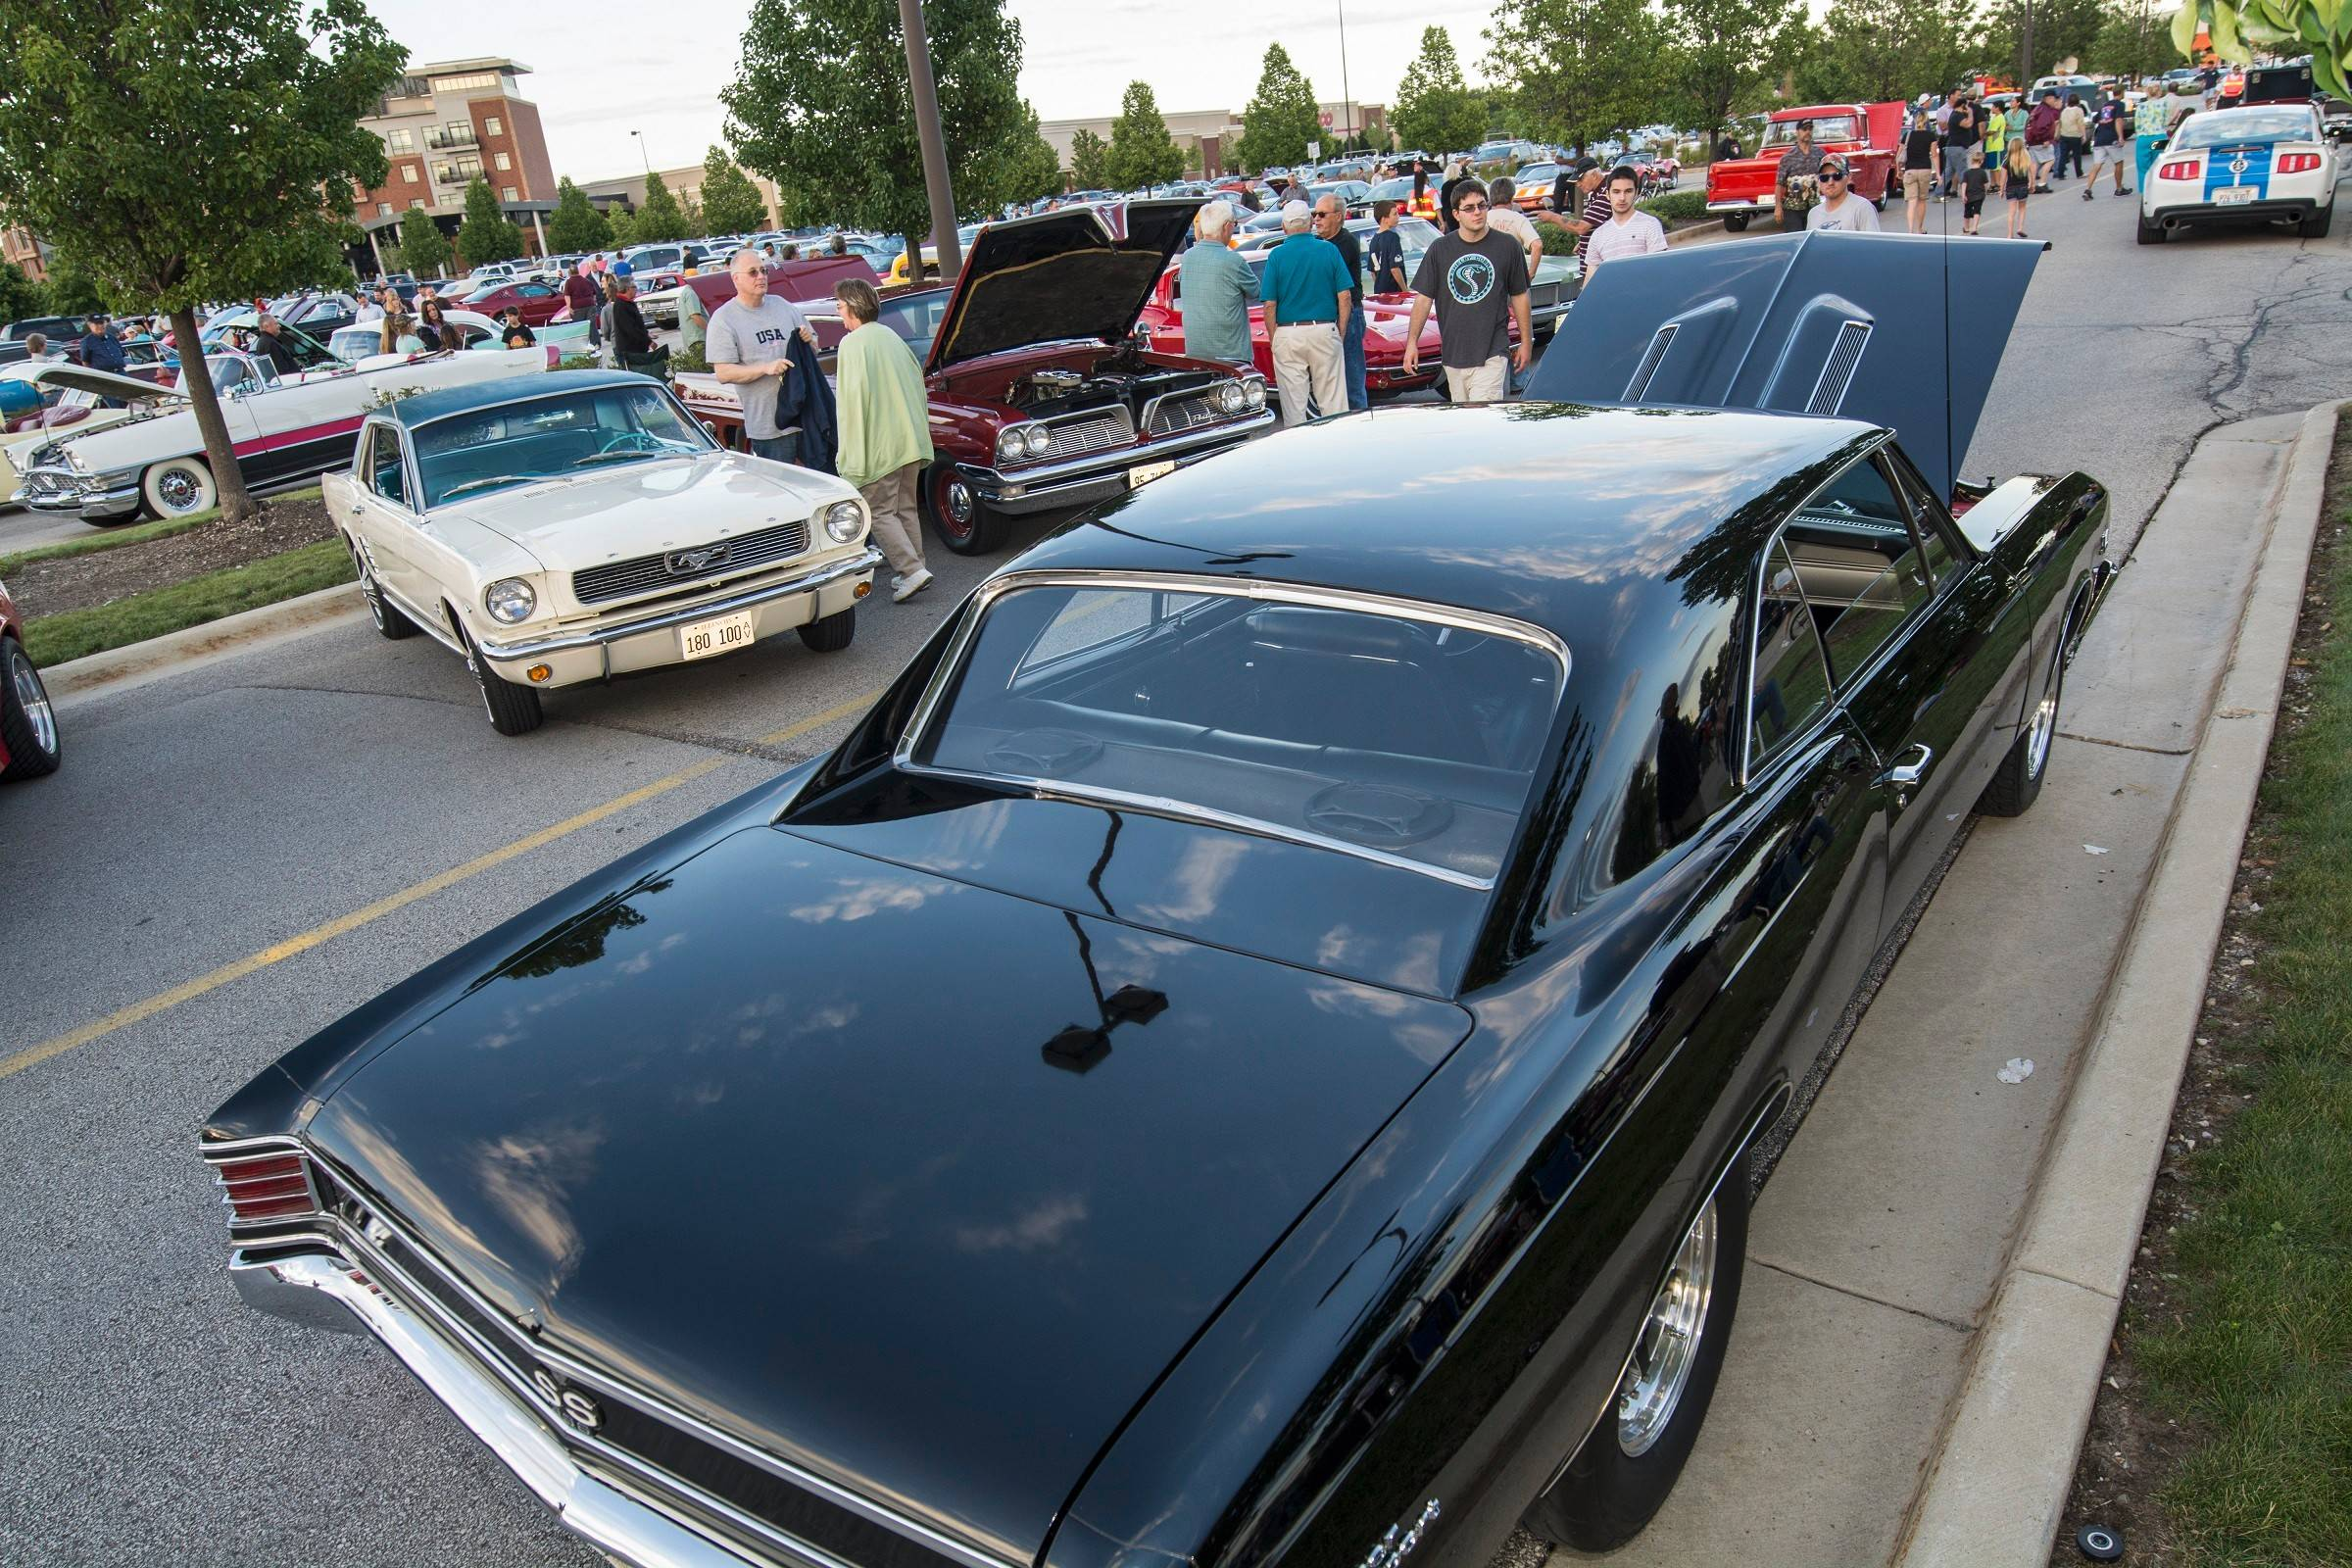 Mark Young of Streamwood brought his race-worthy Chevy to the Randhurst Village Cruise Night.